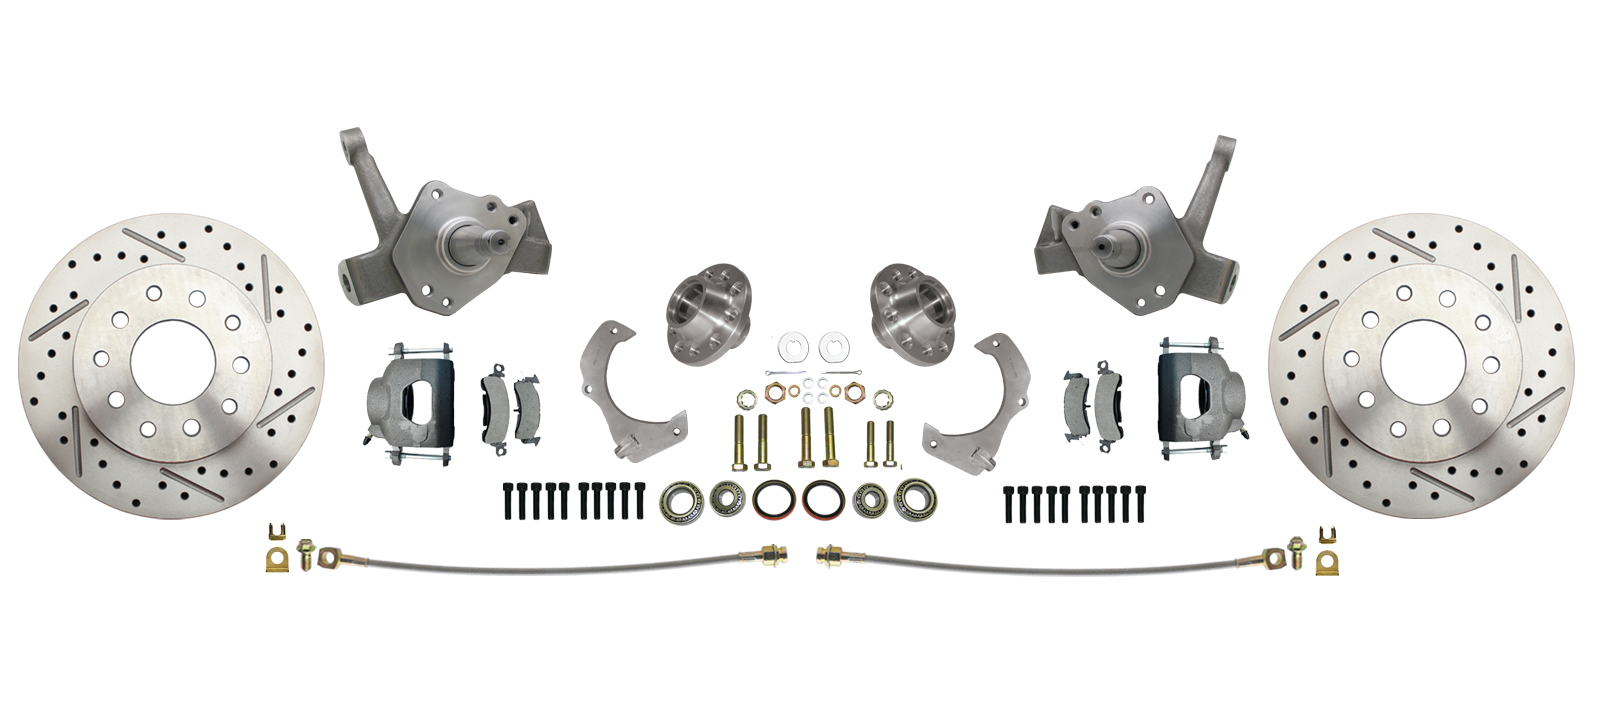 1974-78 Mustang II Stock Height High Performance Kit